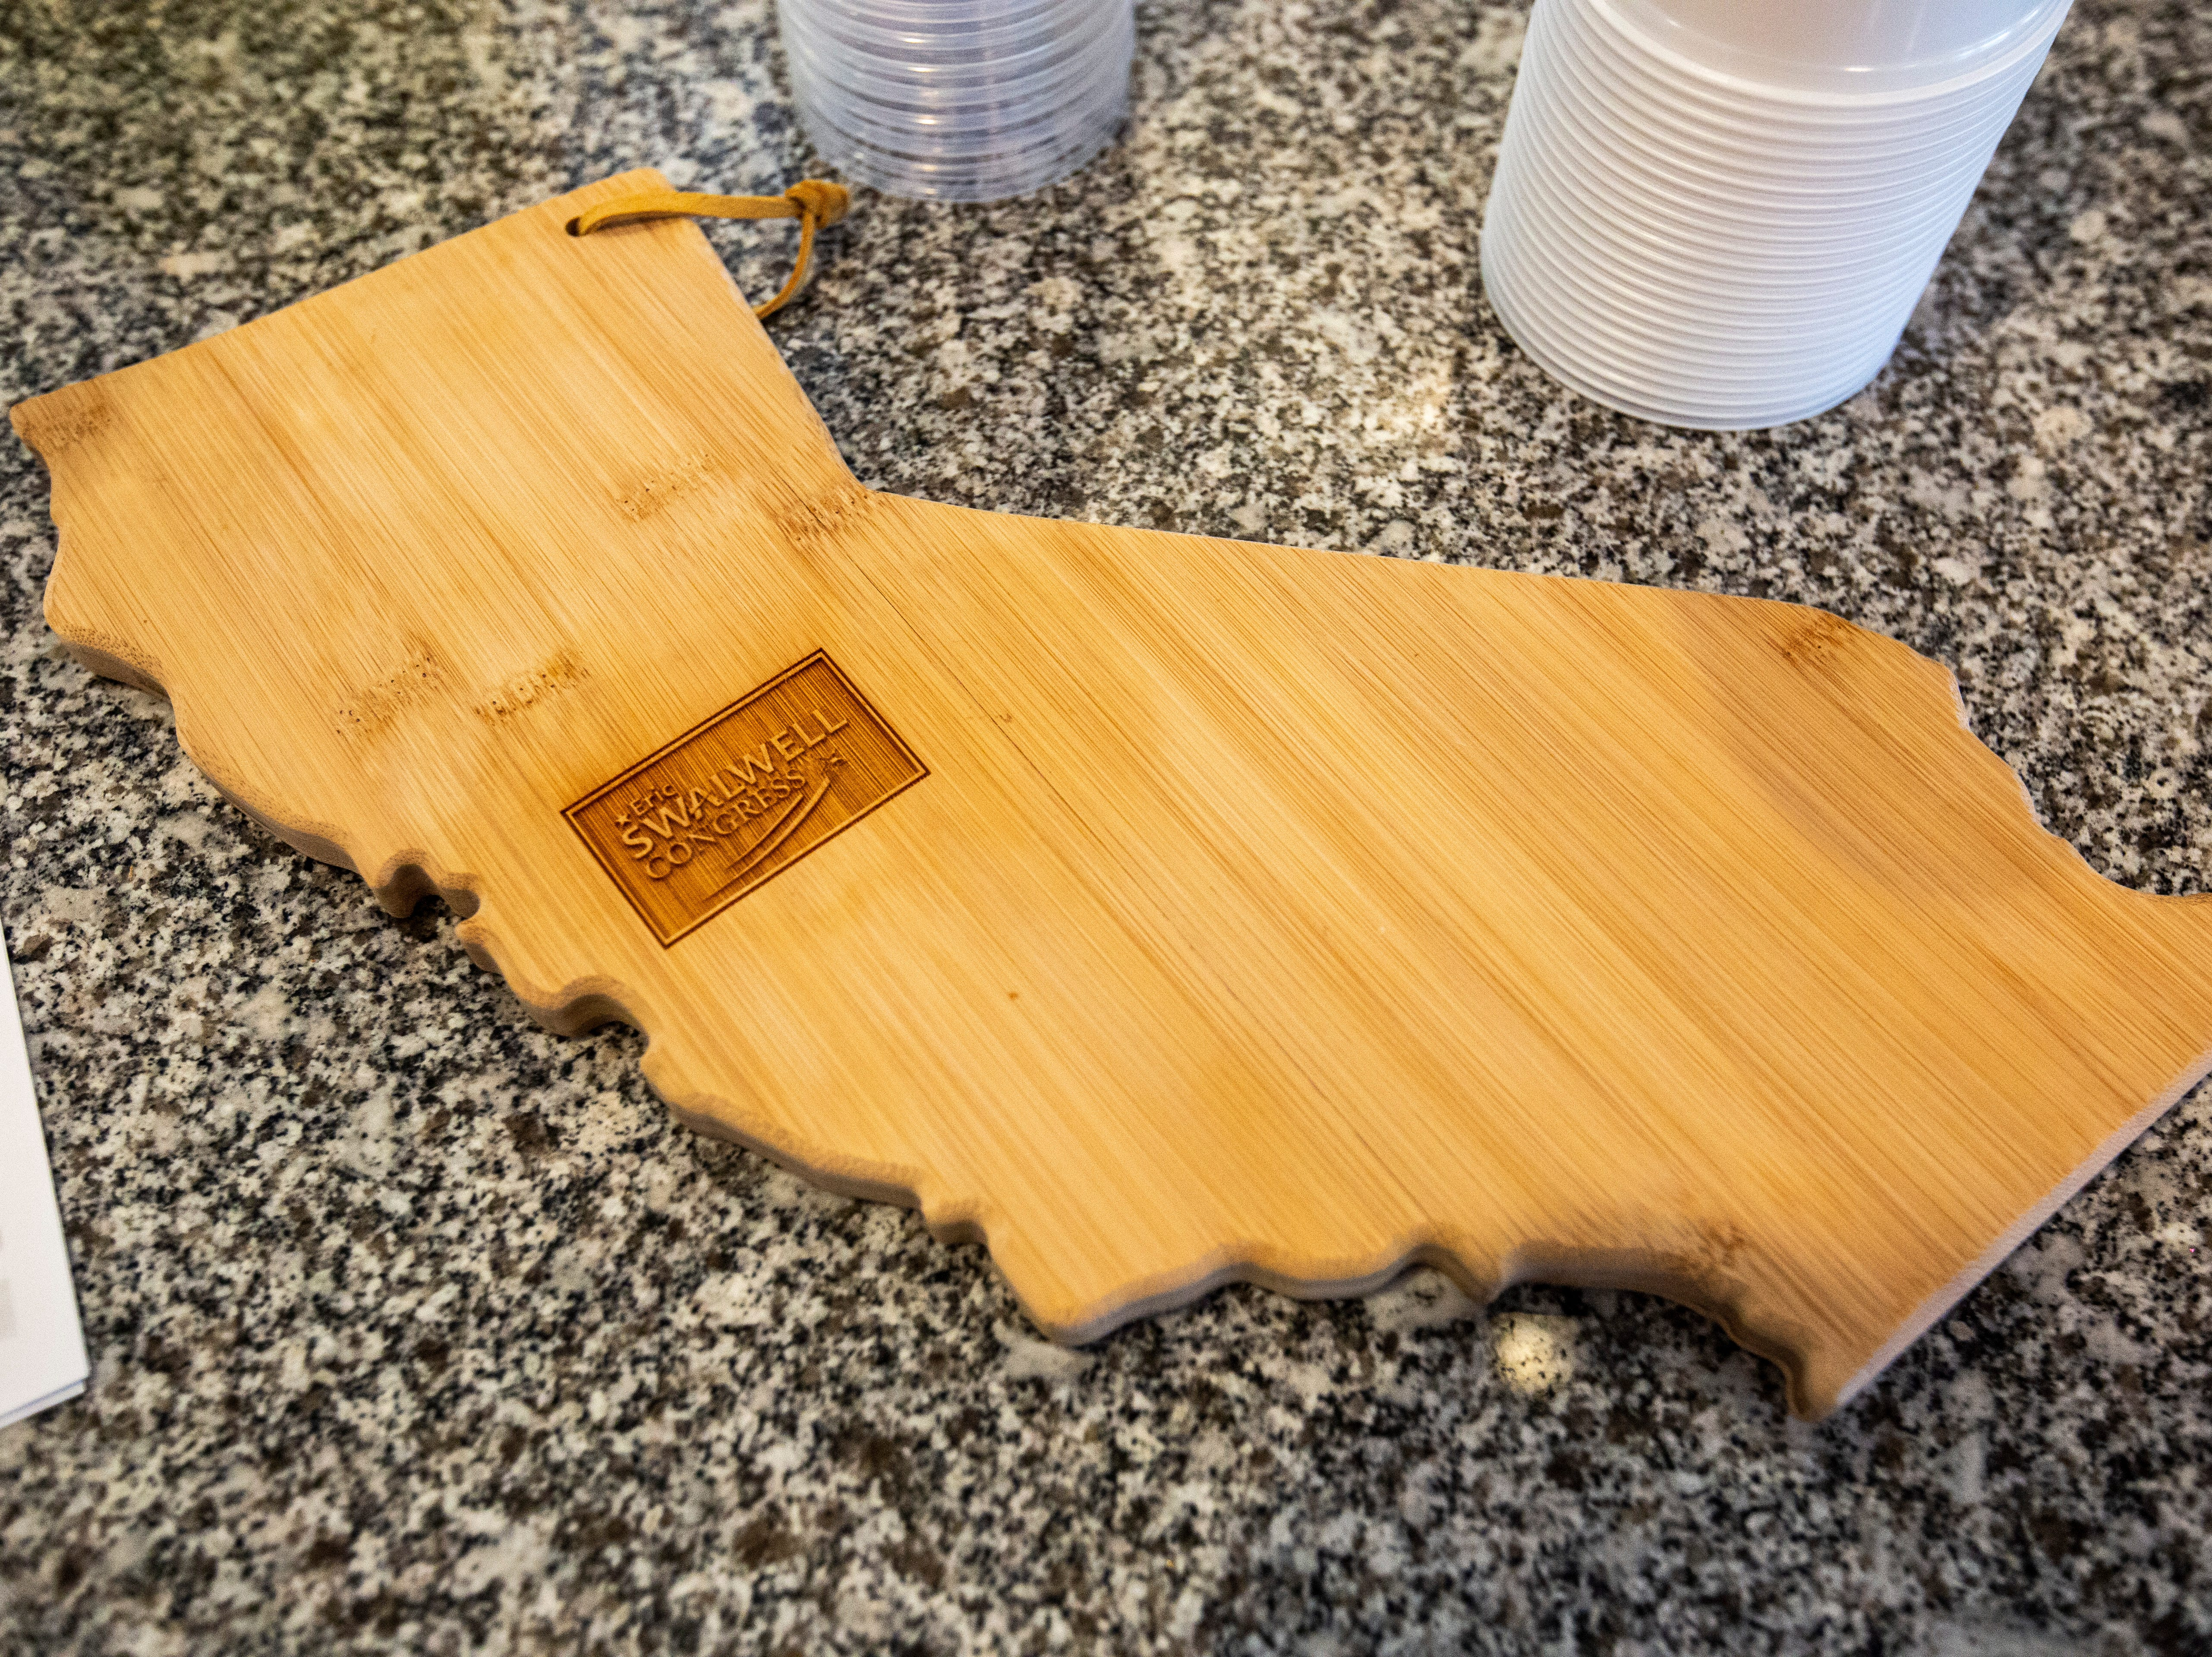 """A wooden cutting board in the shape of California for U.S. Rep. Eric Swalwell, D-Calif., is seen while he speaks to a group at a house party hosted by the """"Potluck Insurgency"""" group, Sunday, April 28, 2019, at a home in North Liberty, Iowa."""